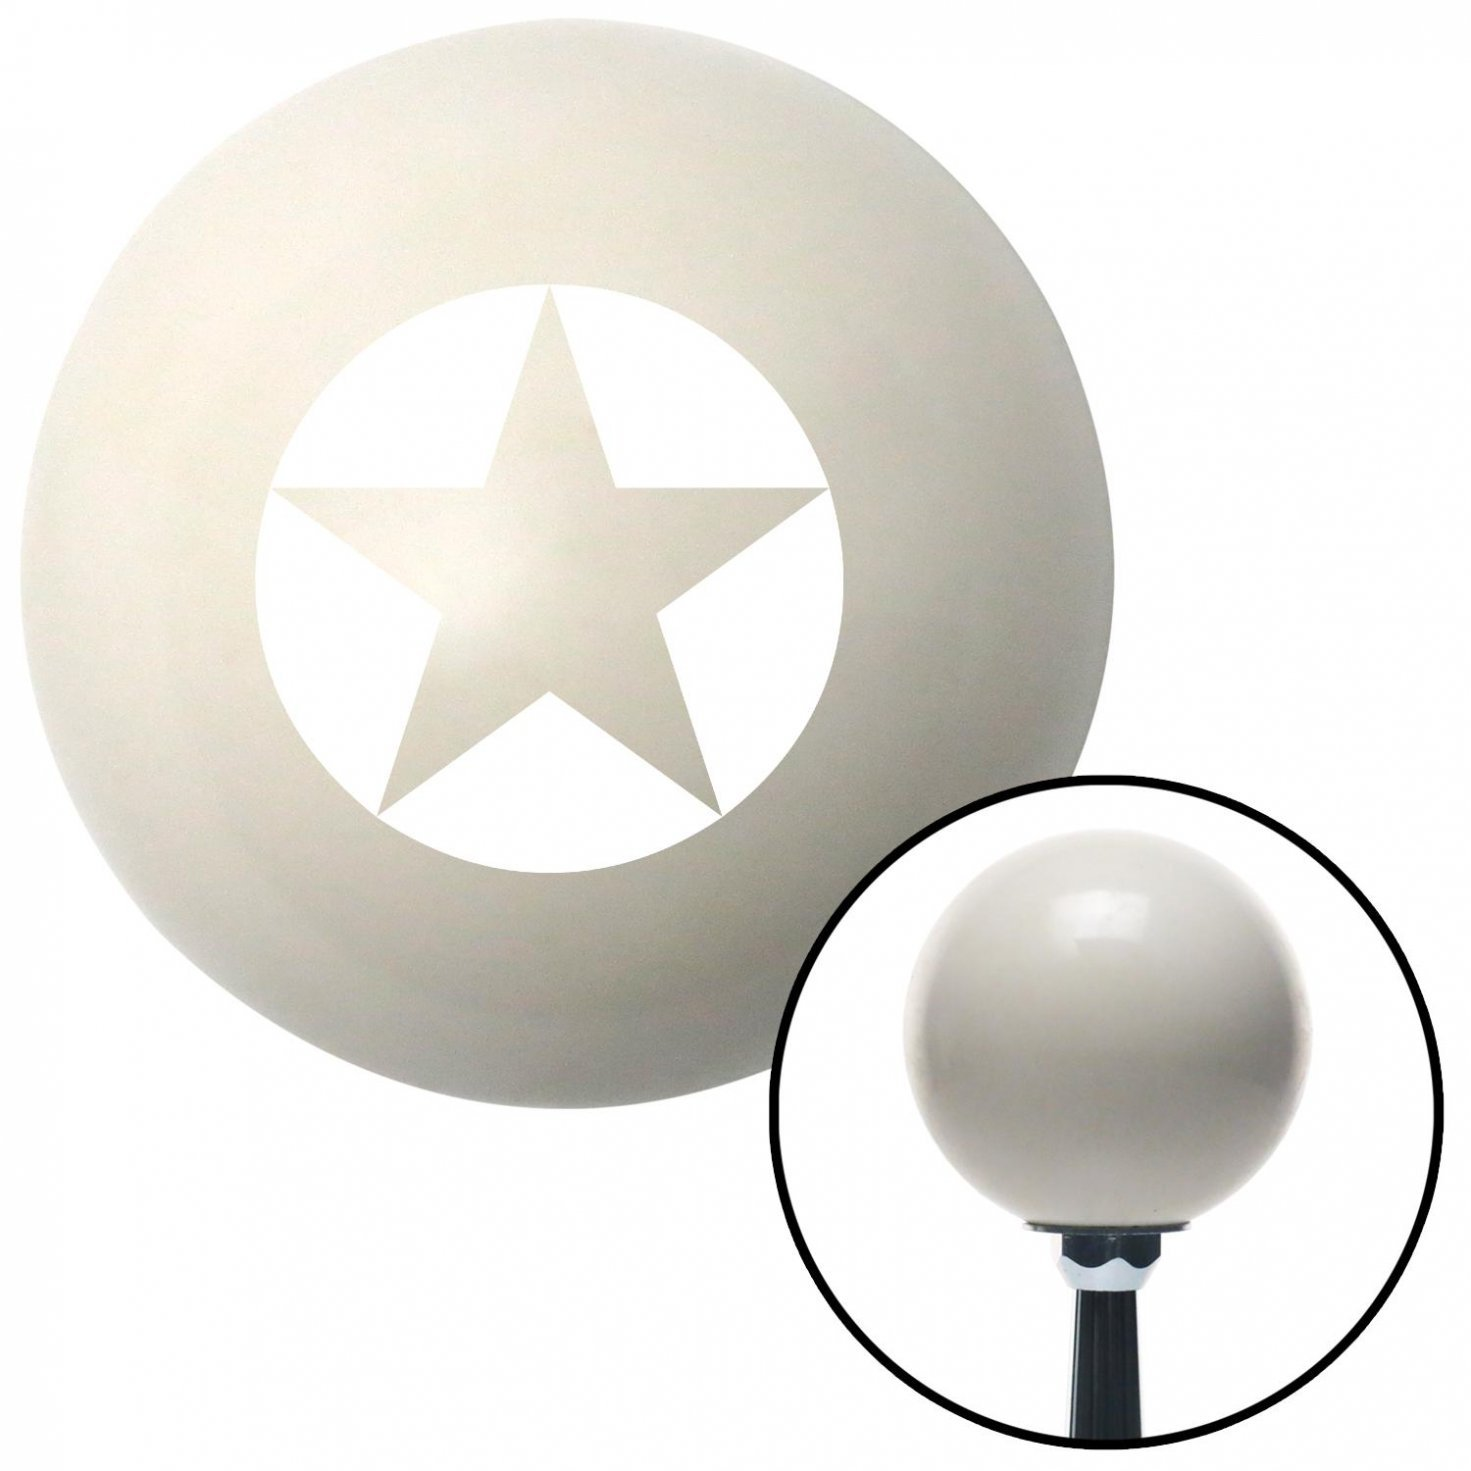 American Shifter 41007 Ivory Shift Knob with 16mm x 1.5 Insert White Star in Circle